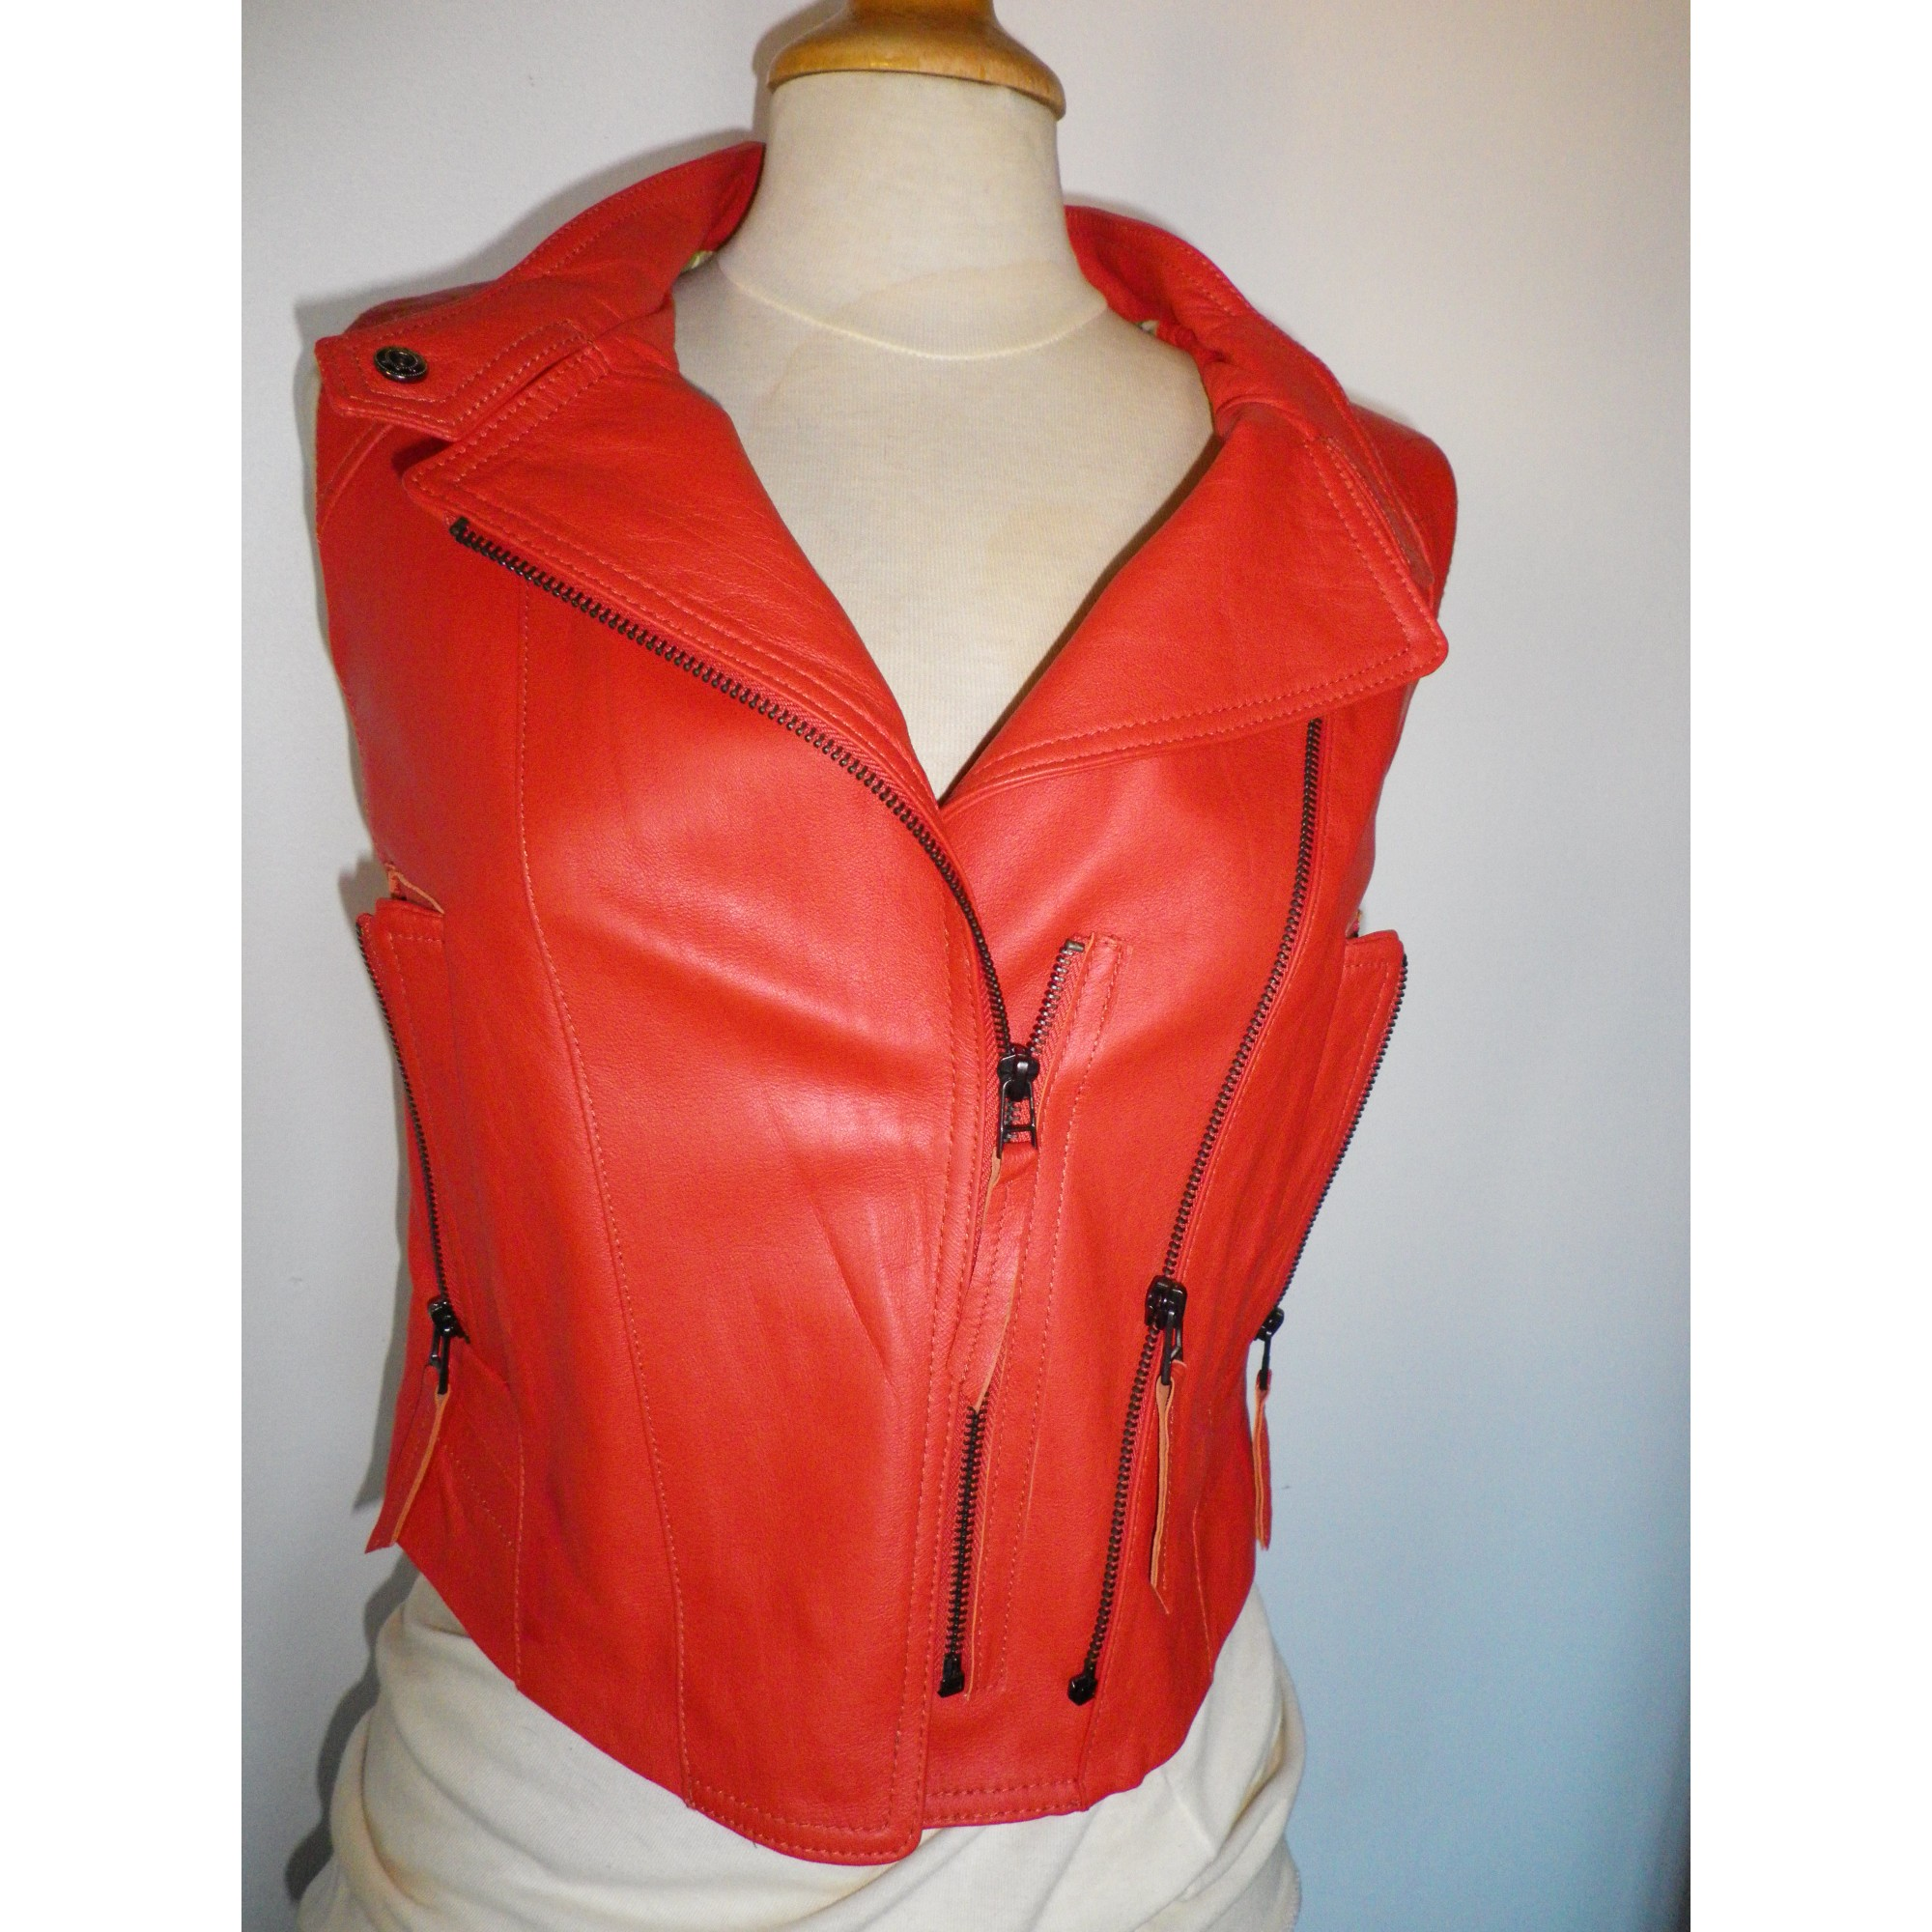 Veste en cuir TRS Orange